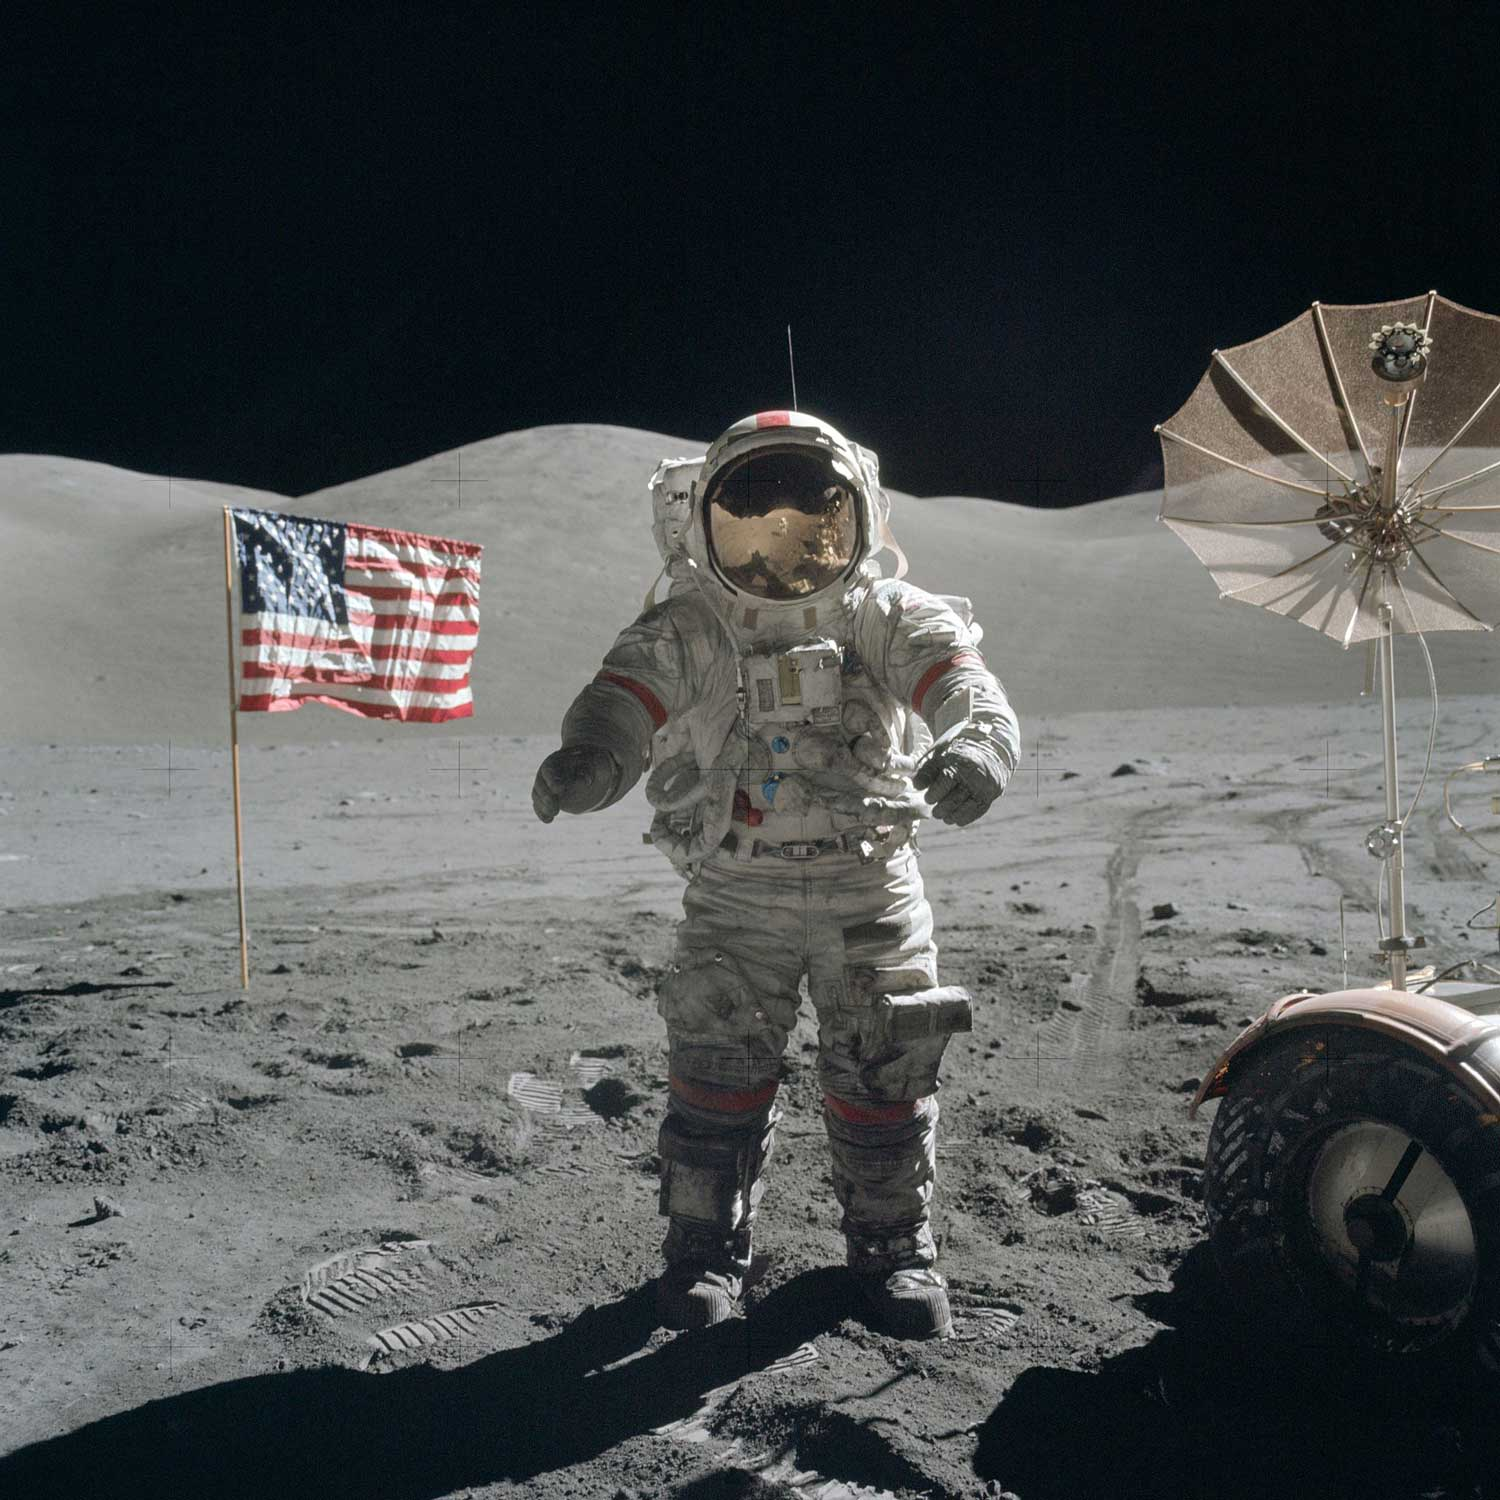 Cernan pictured next to the American flag. He was the last man to set foot on the Lunar surface